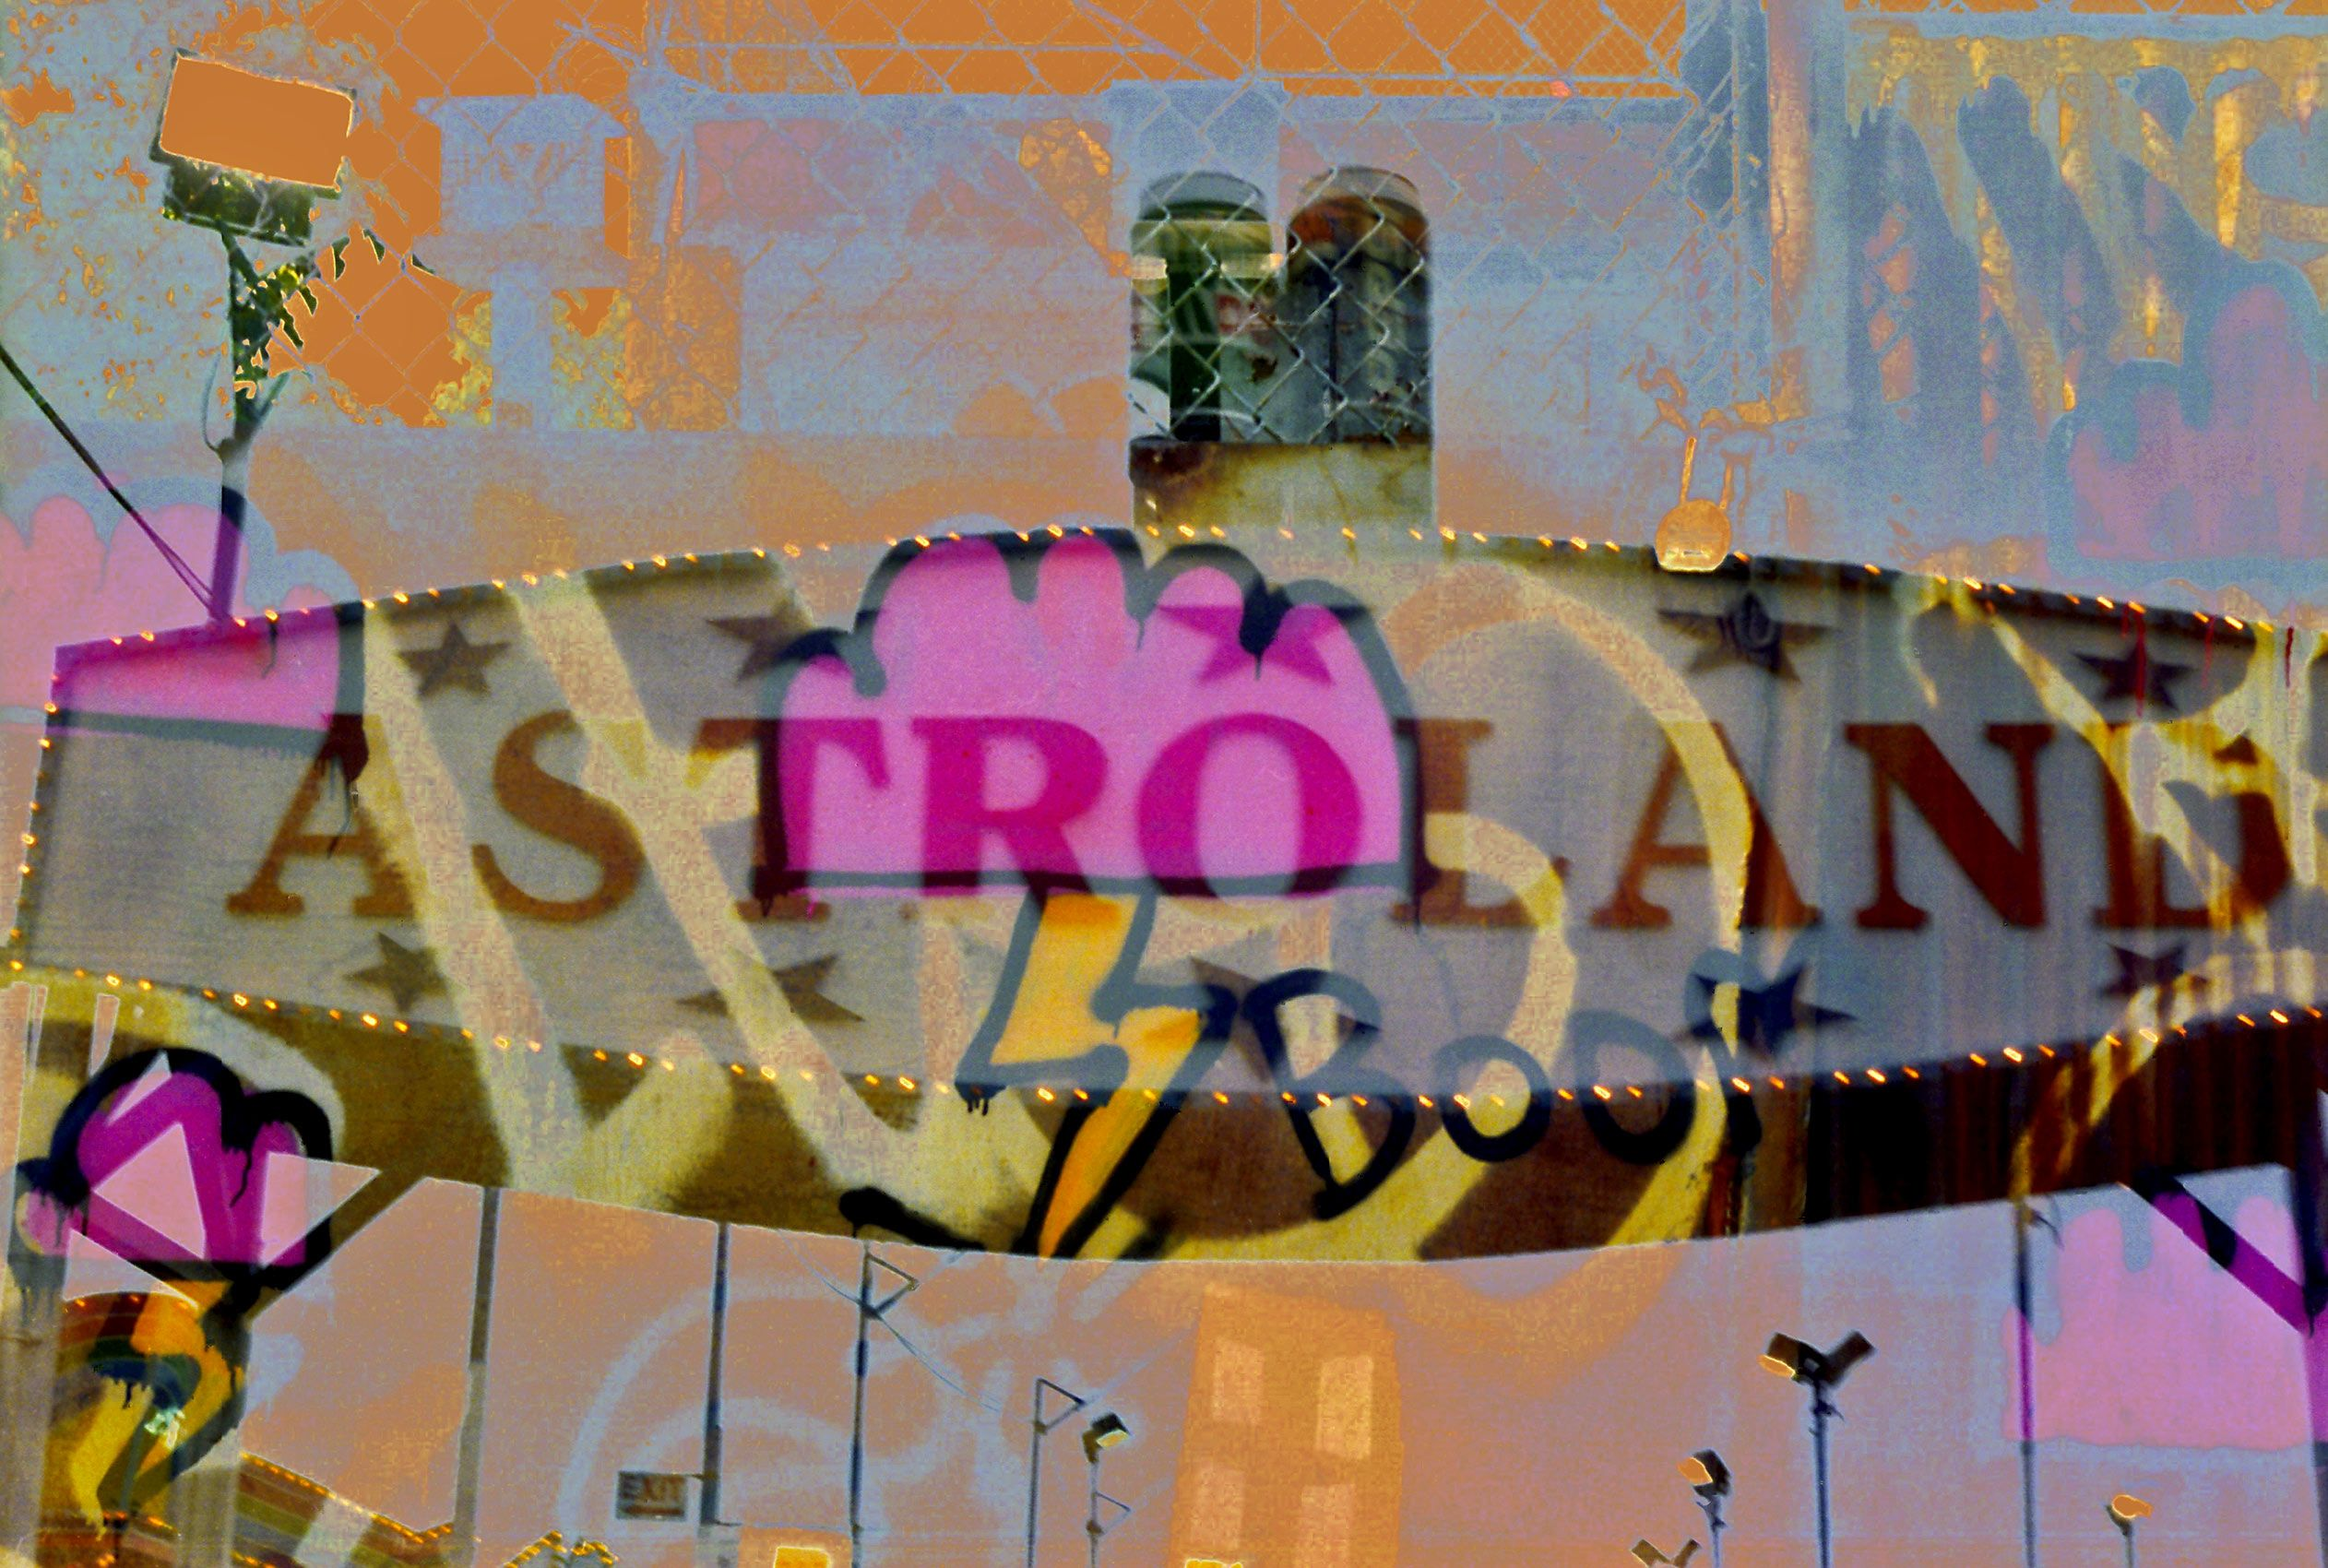 The Expansion of Astroland